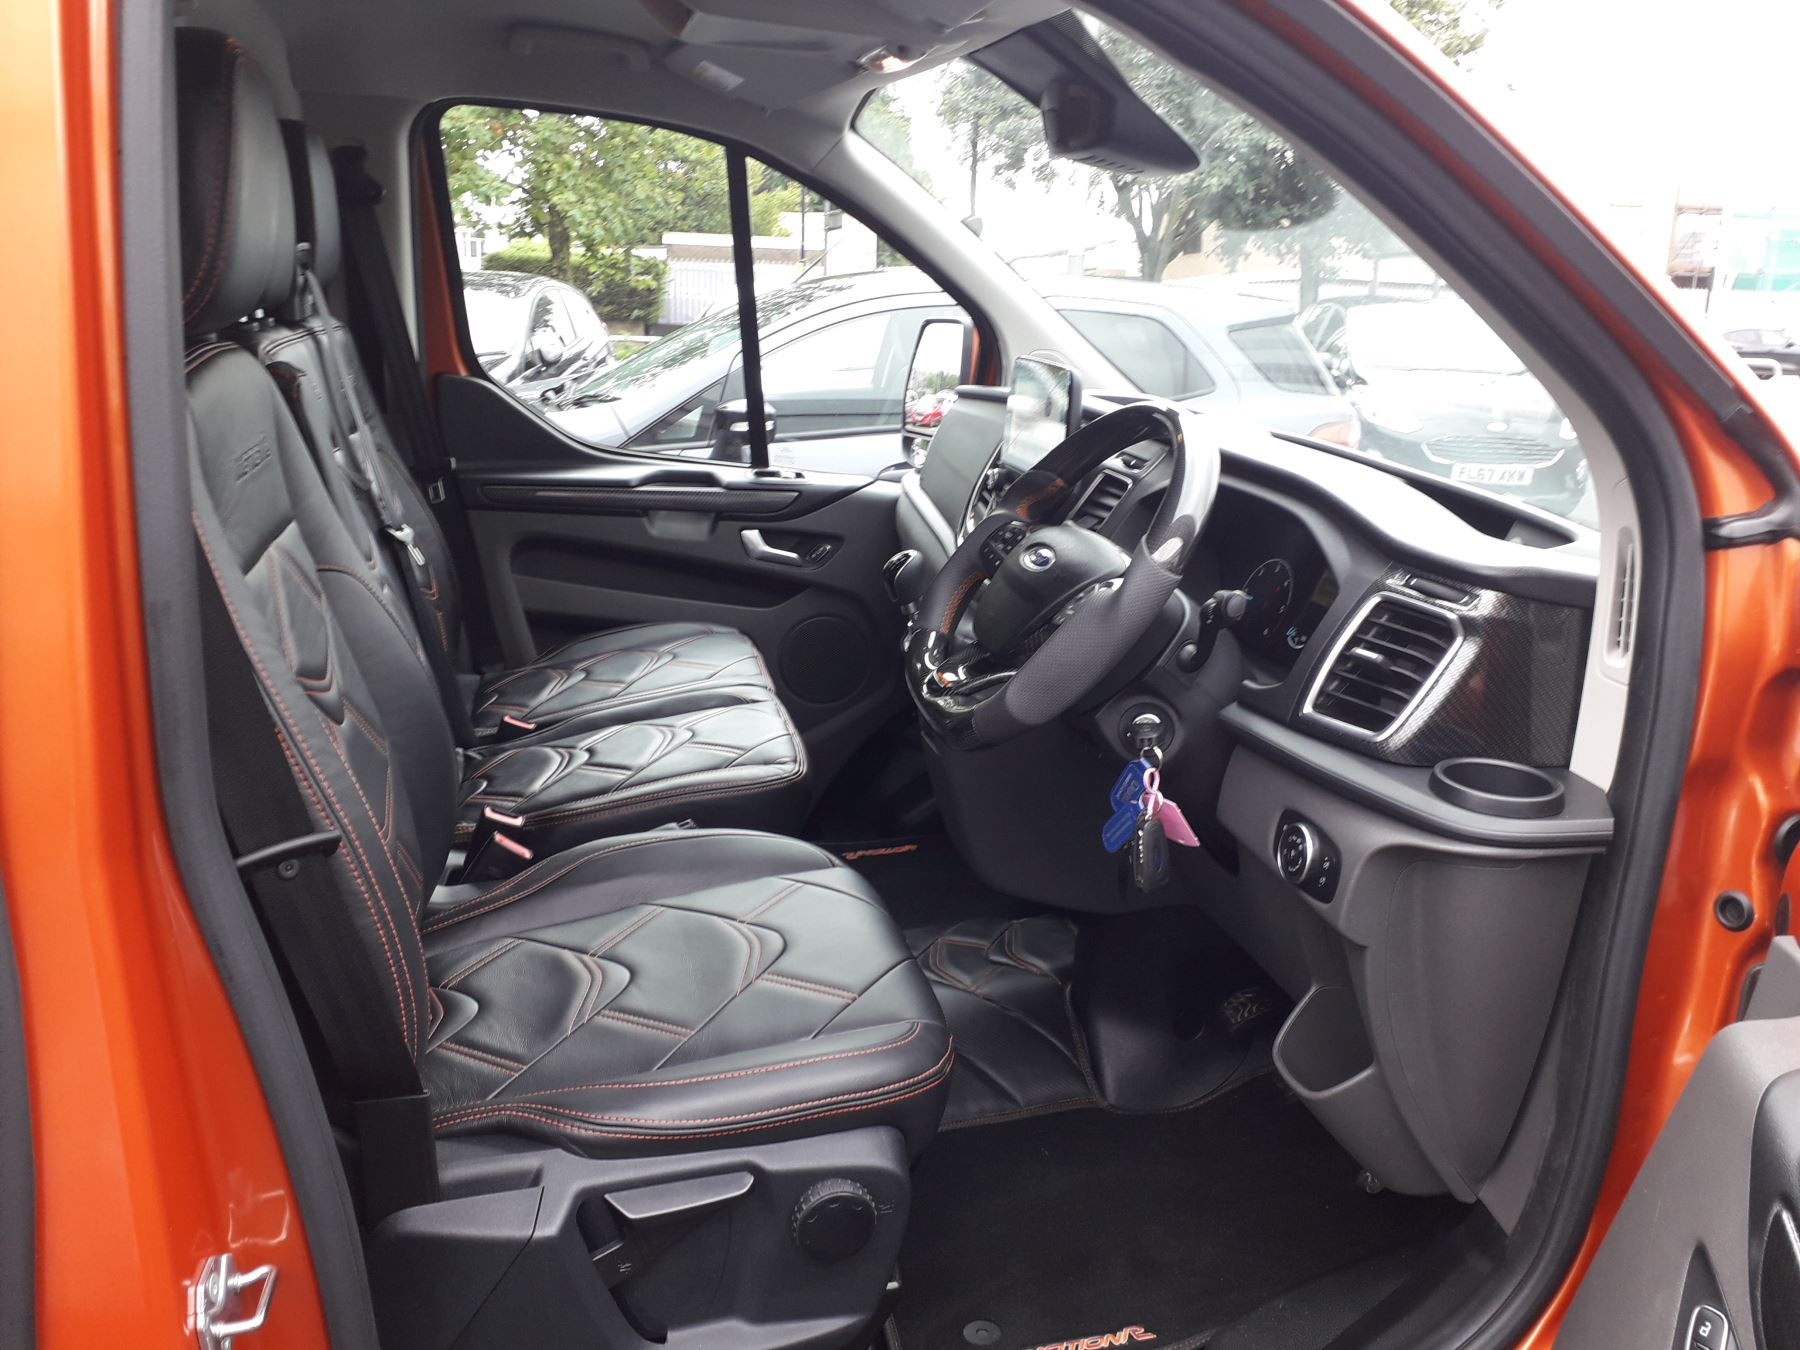 Ford Transit Custom 280 L1 Motion R 130PS Euro 6 image 9